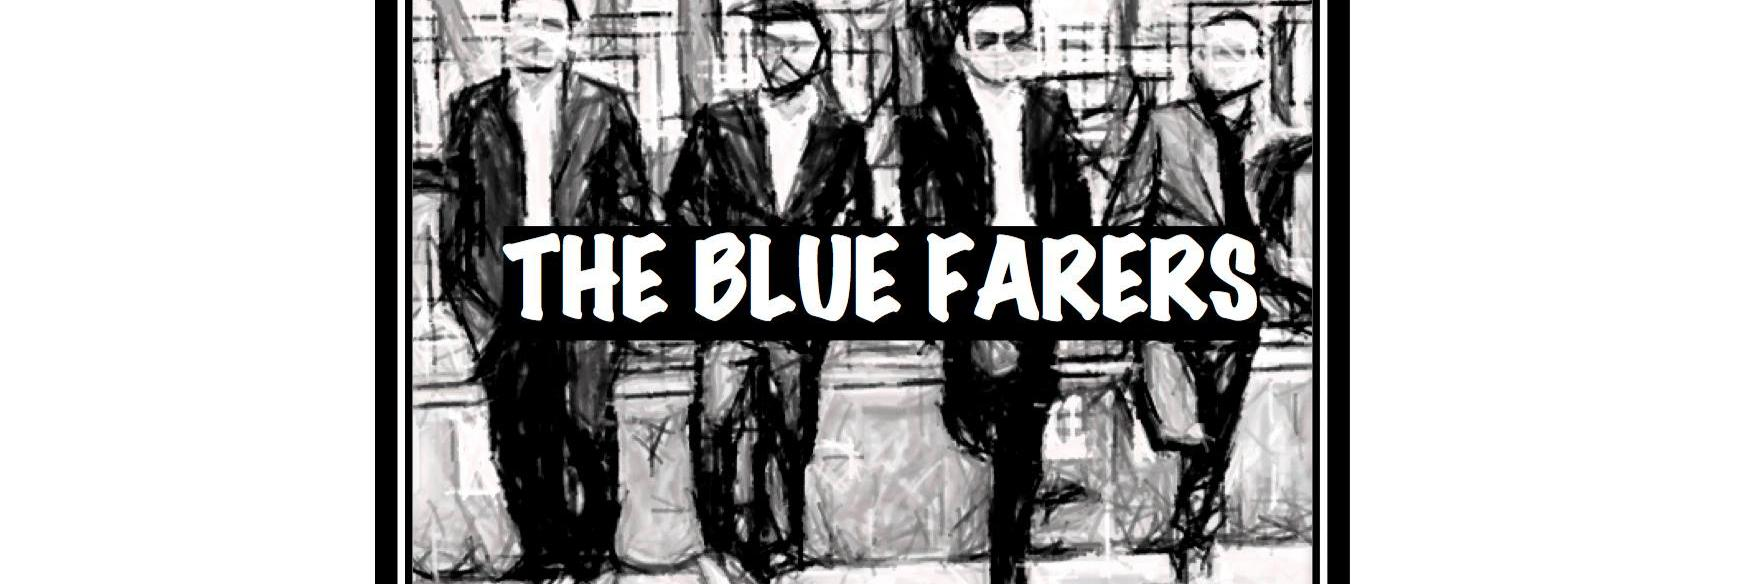 The Blue Farers